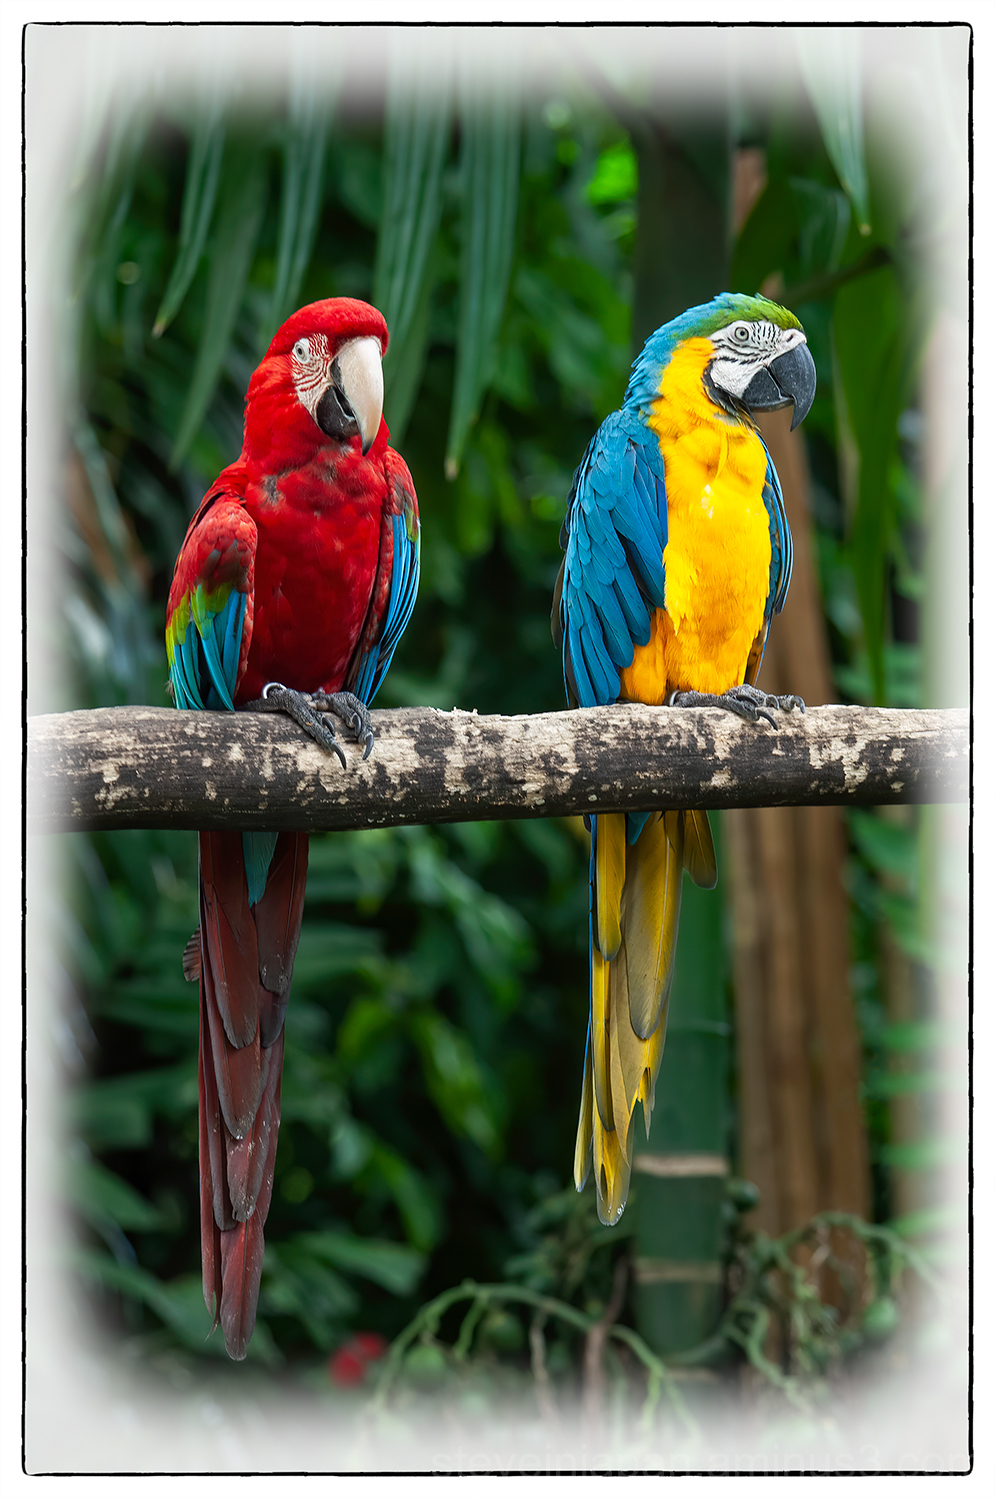 Birds at the Jurong Bird Park in Singapore.